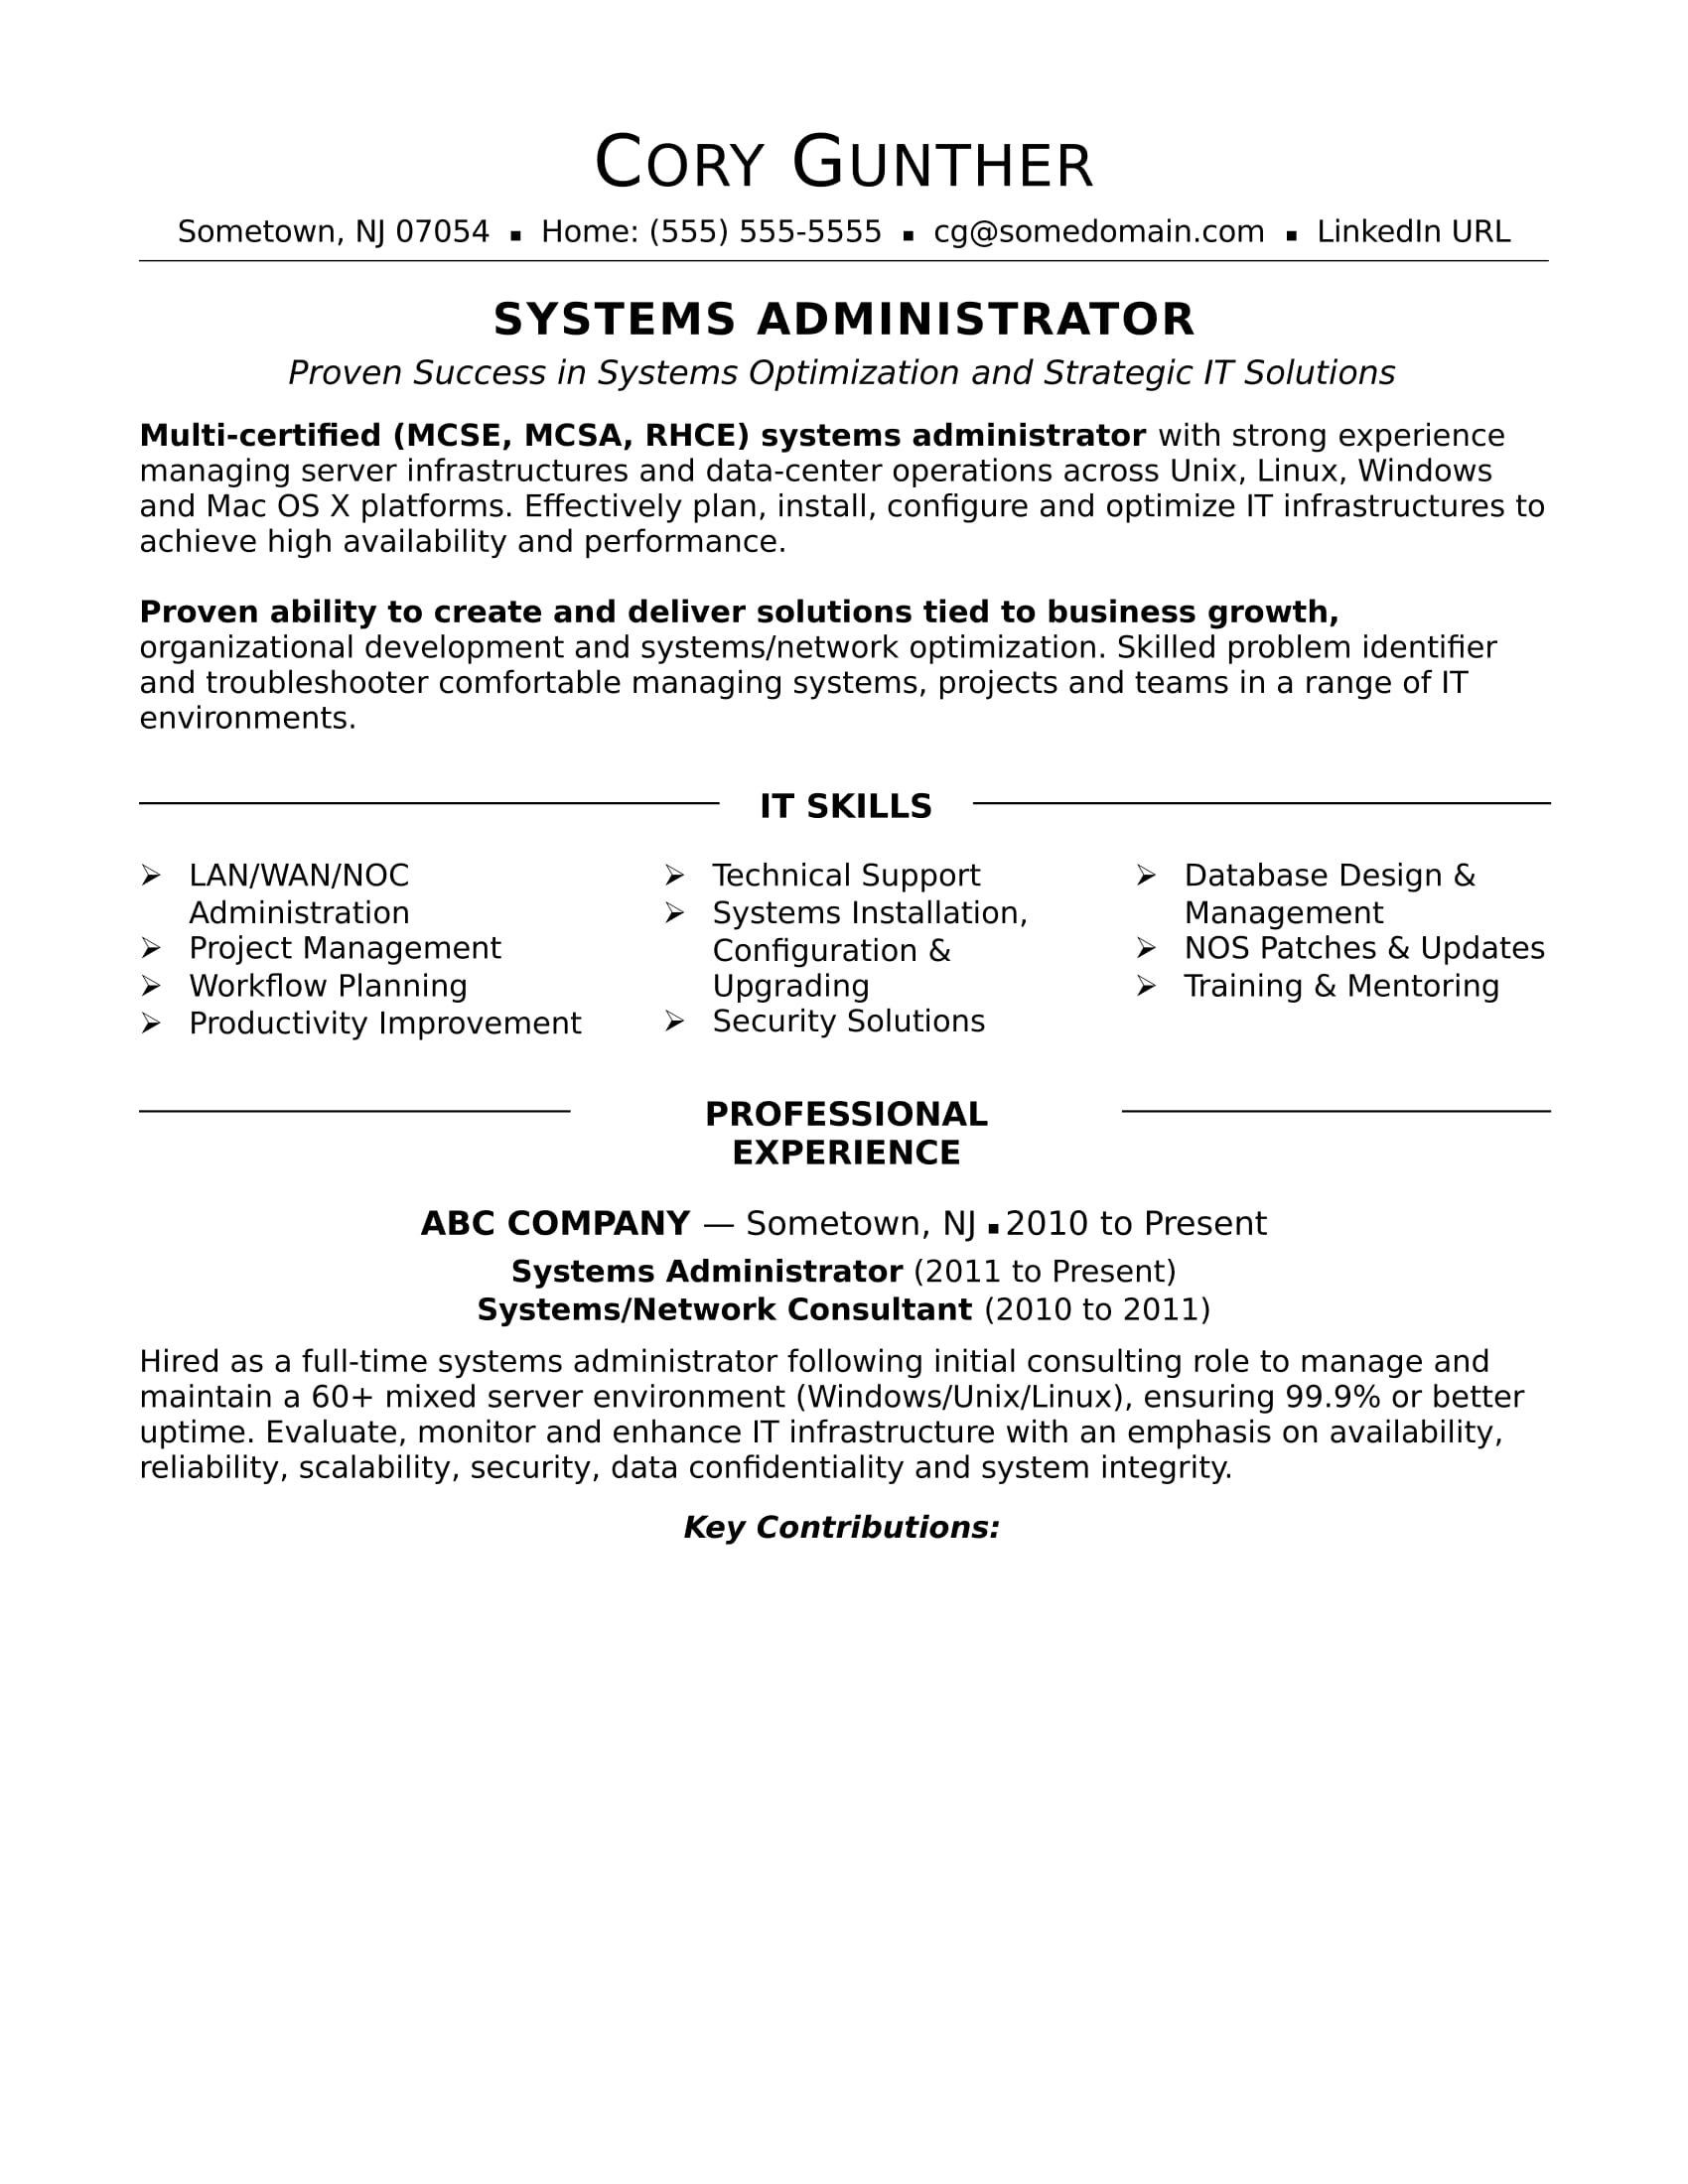 sample resume for an experienced systems administrator monster system reddit apply job Resume System Administrator Resume Reddit